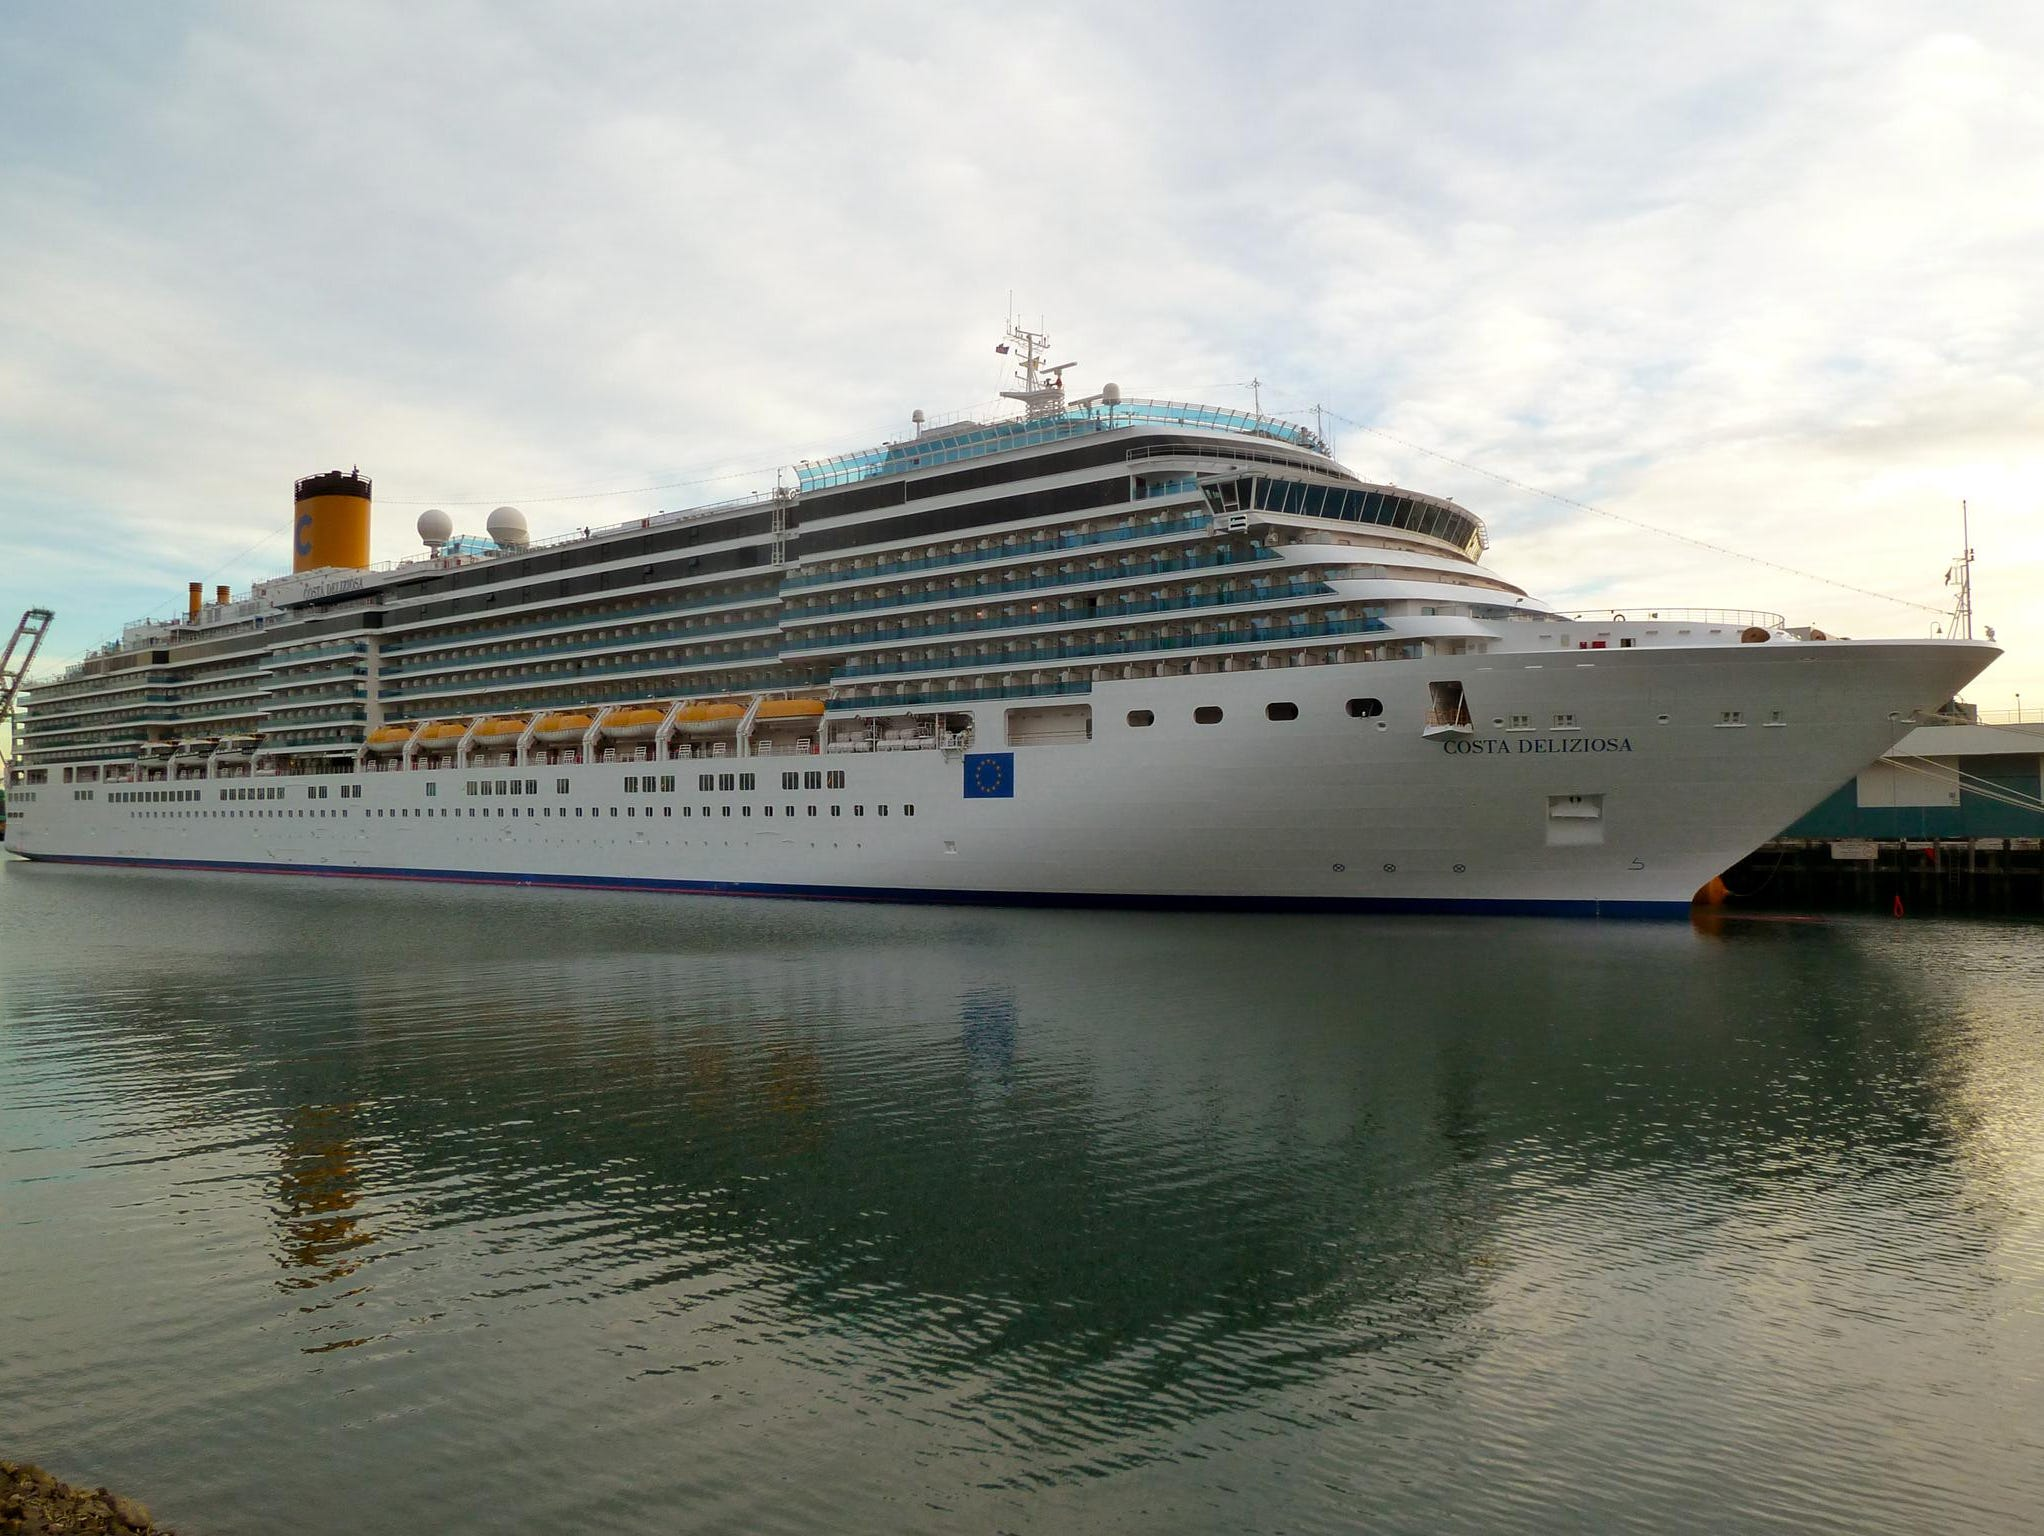 Costa Cruises is the European mass market or 'contemporary' equivalent to Carnival Cruise Lines but its $450 million, 92,600-gross-ton flagships Costa Deliziosa and Costa Luminosa, are considered slightly more upmarket, if not 'premium' category vessels.